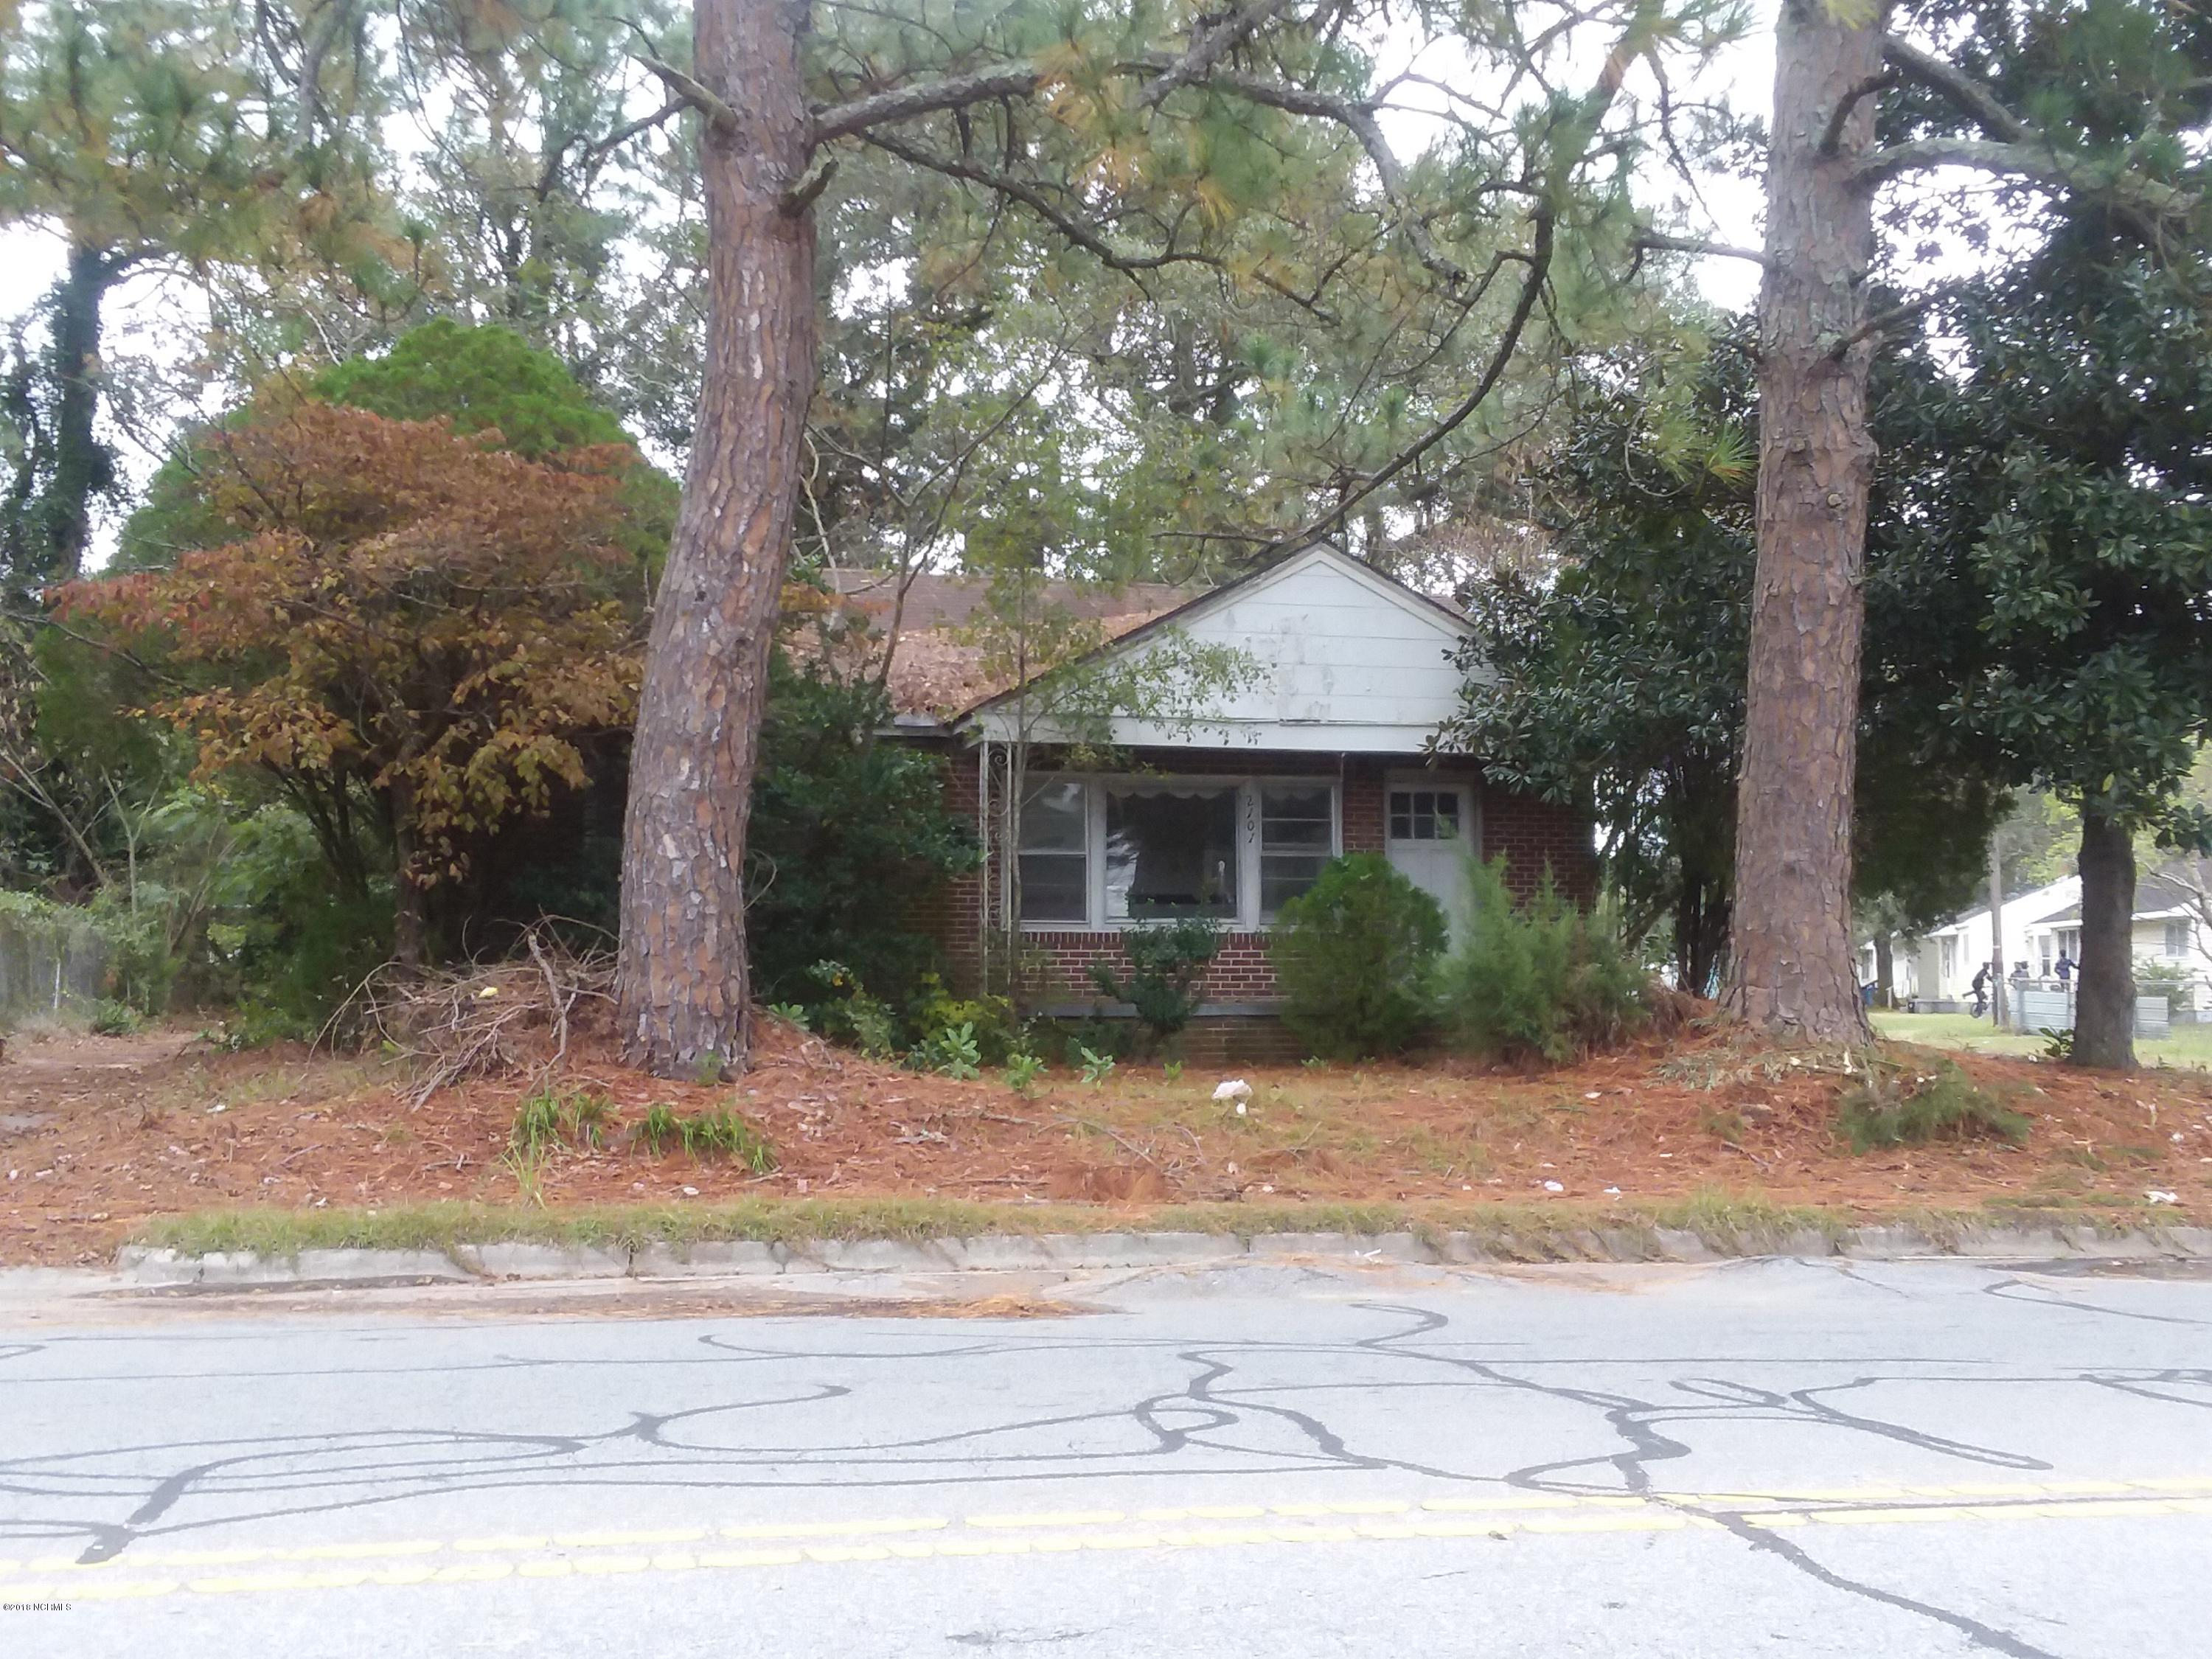 2101 Old Snow Hill Road, Kinston, North Carolina, 2 Bedrooms Bedrooms, 5 Rooms Rooms,1 BathroomBathrooms,Single family residence,For sale,Old Snow Hill,100139976